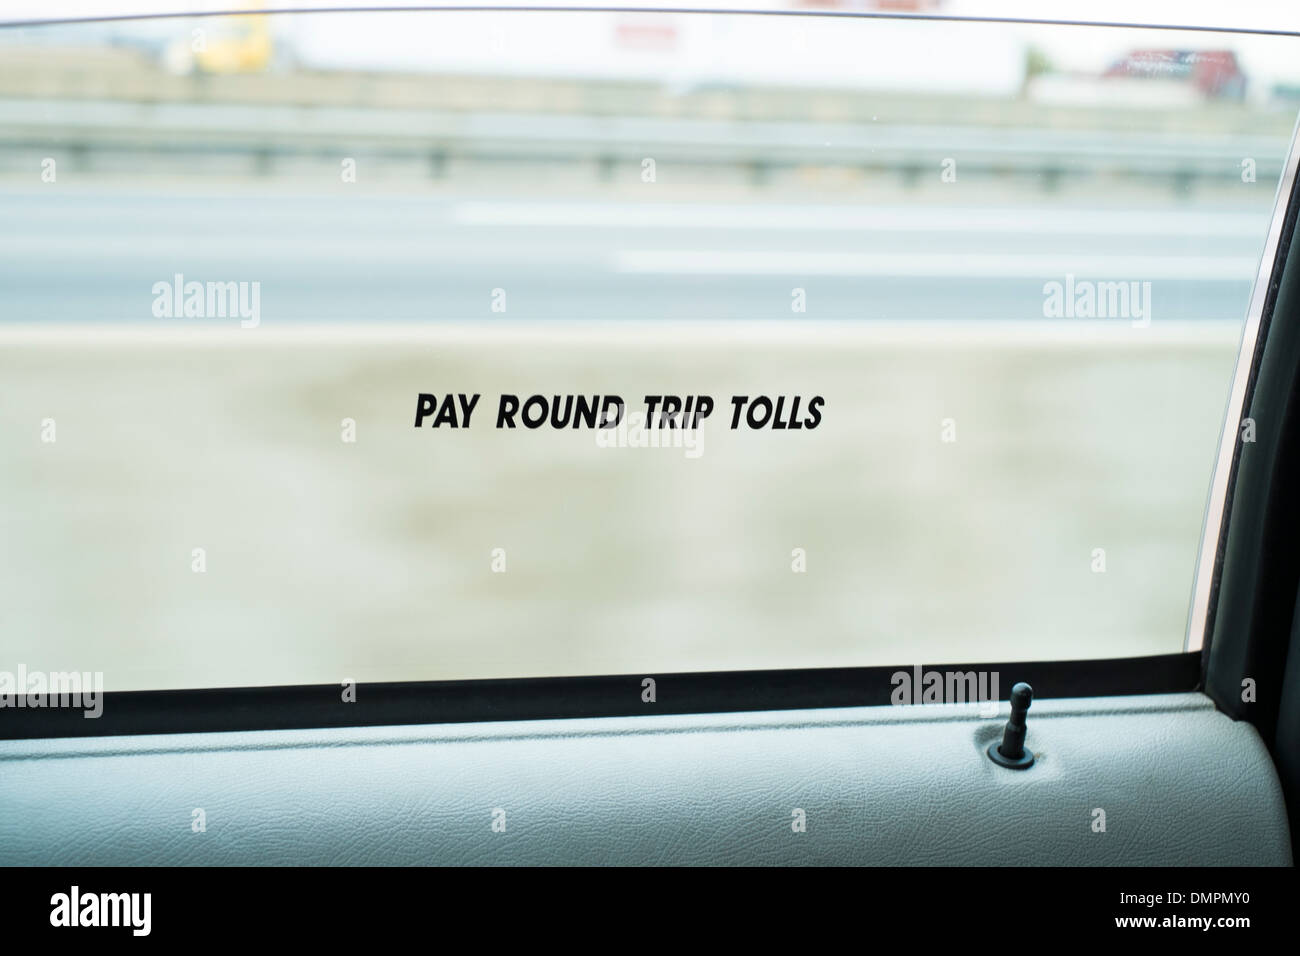 Detail shot of New York yellow taxi showing the window sign saying Pay Round Trip Tolls. - Stock Image